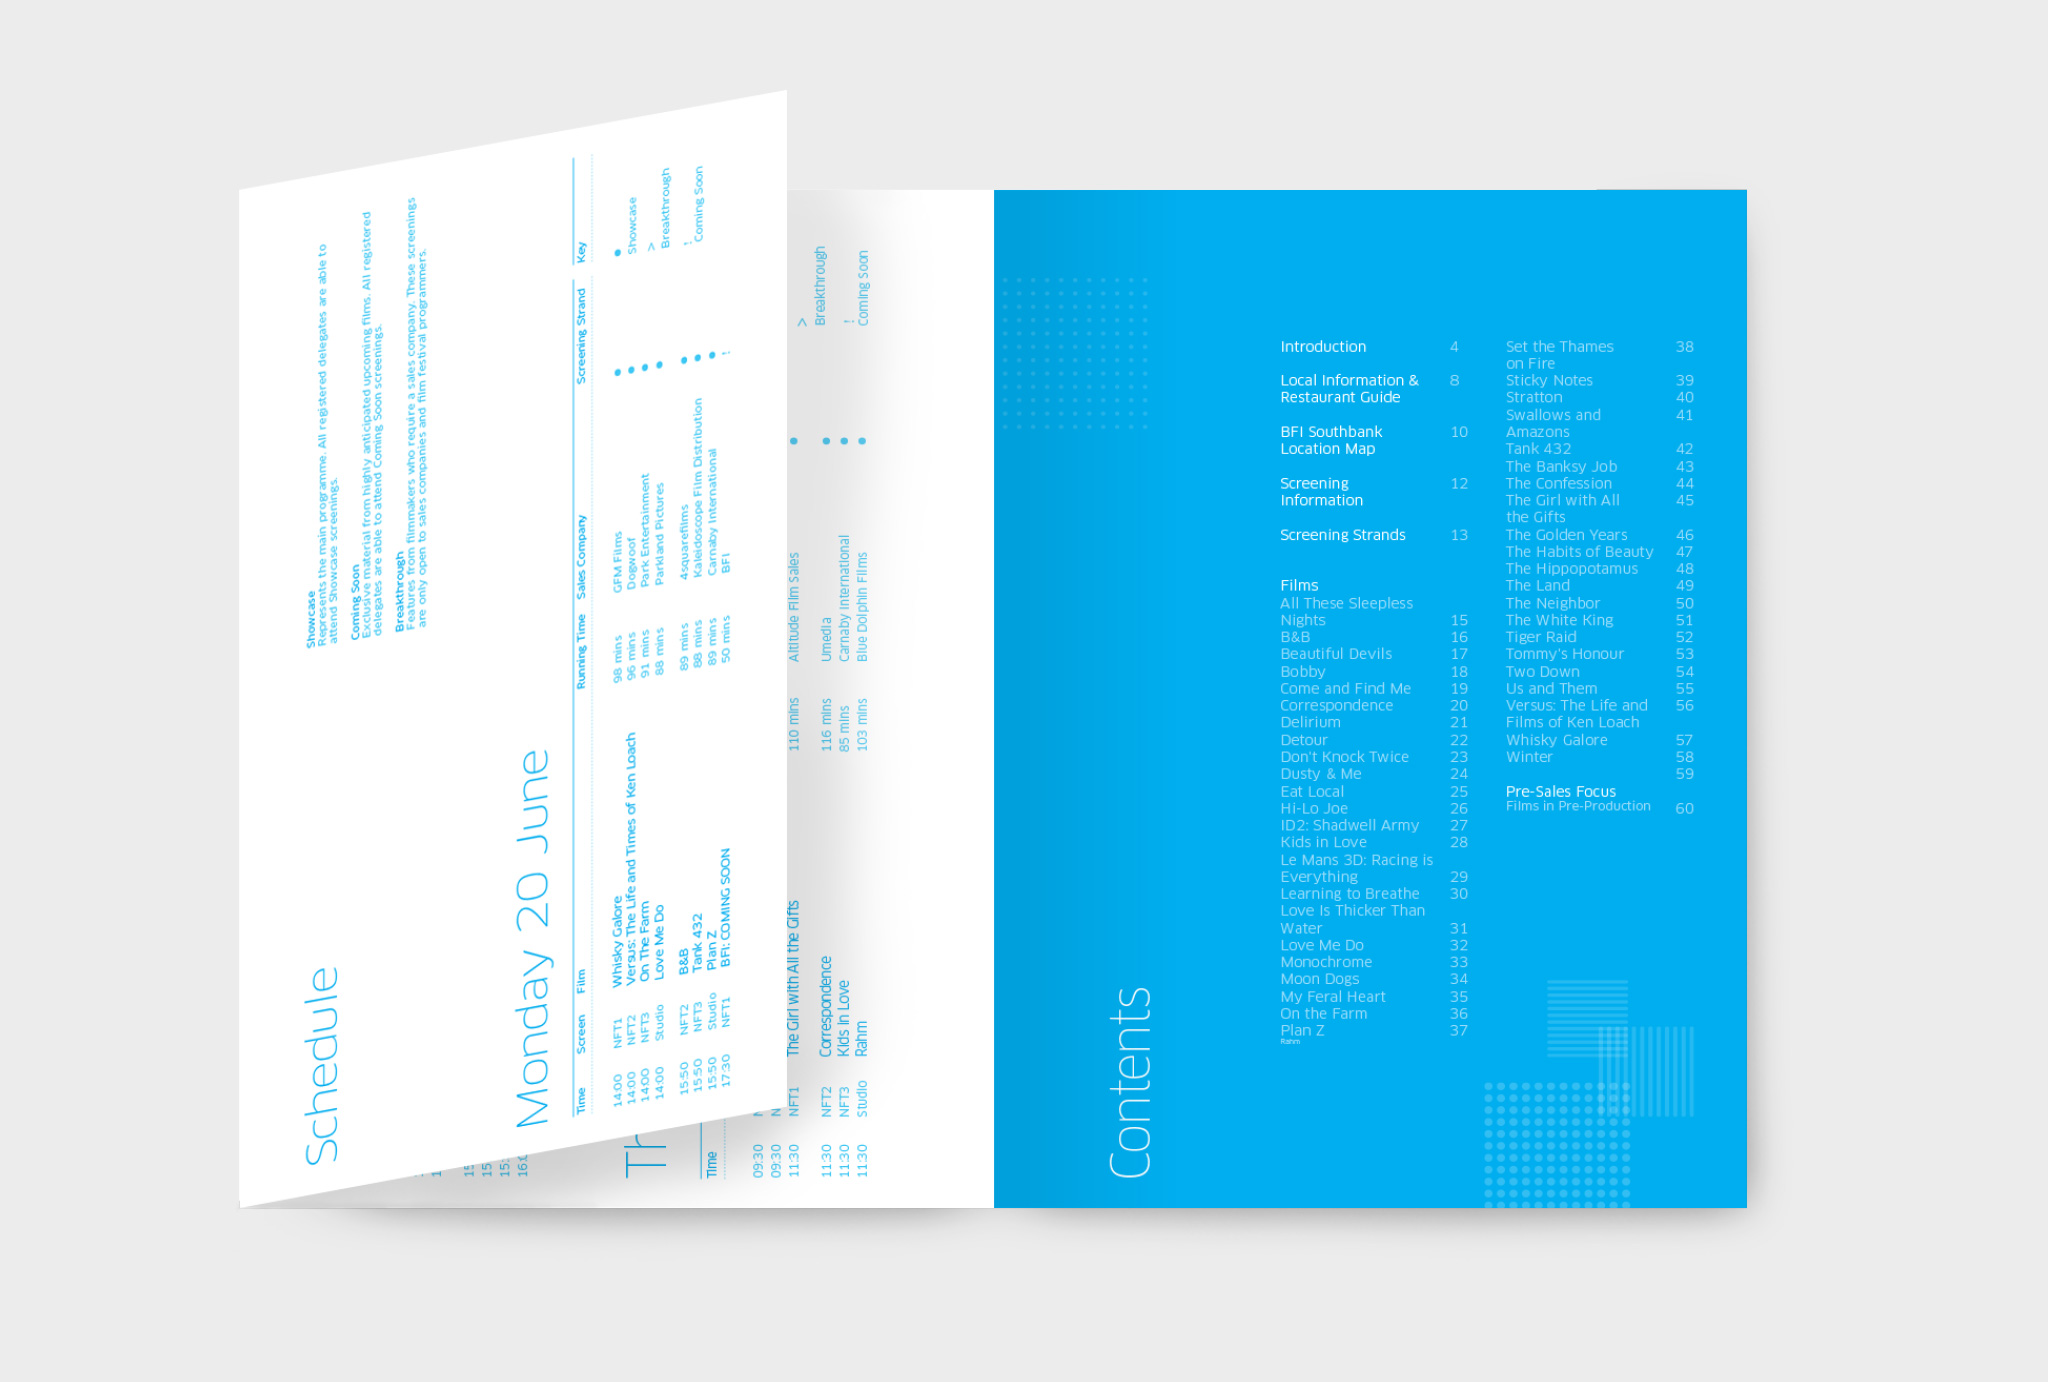 contents page and schedule of catalogue in blue and white